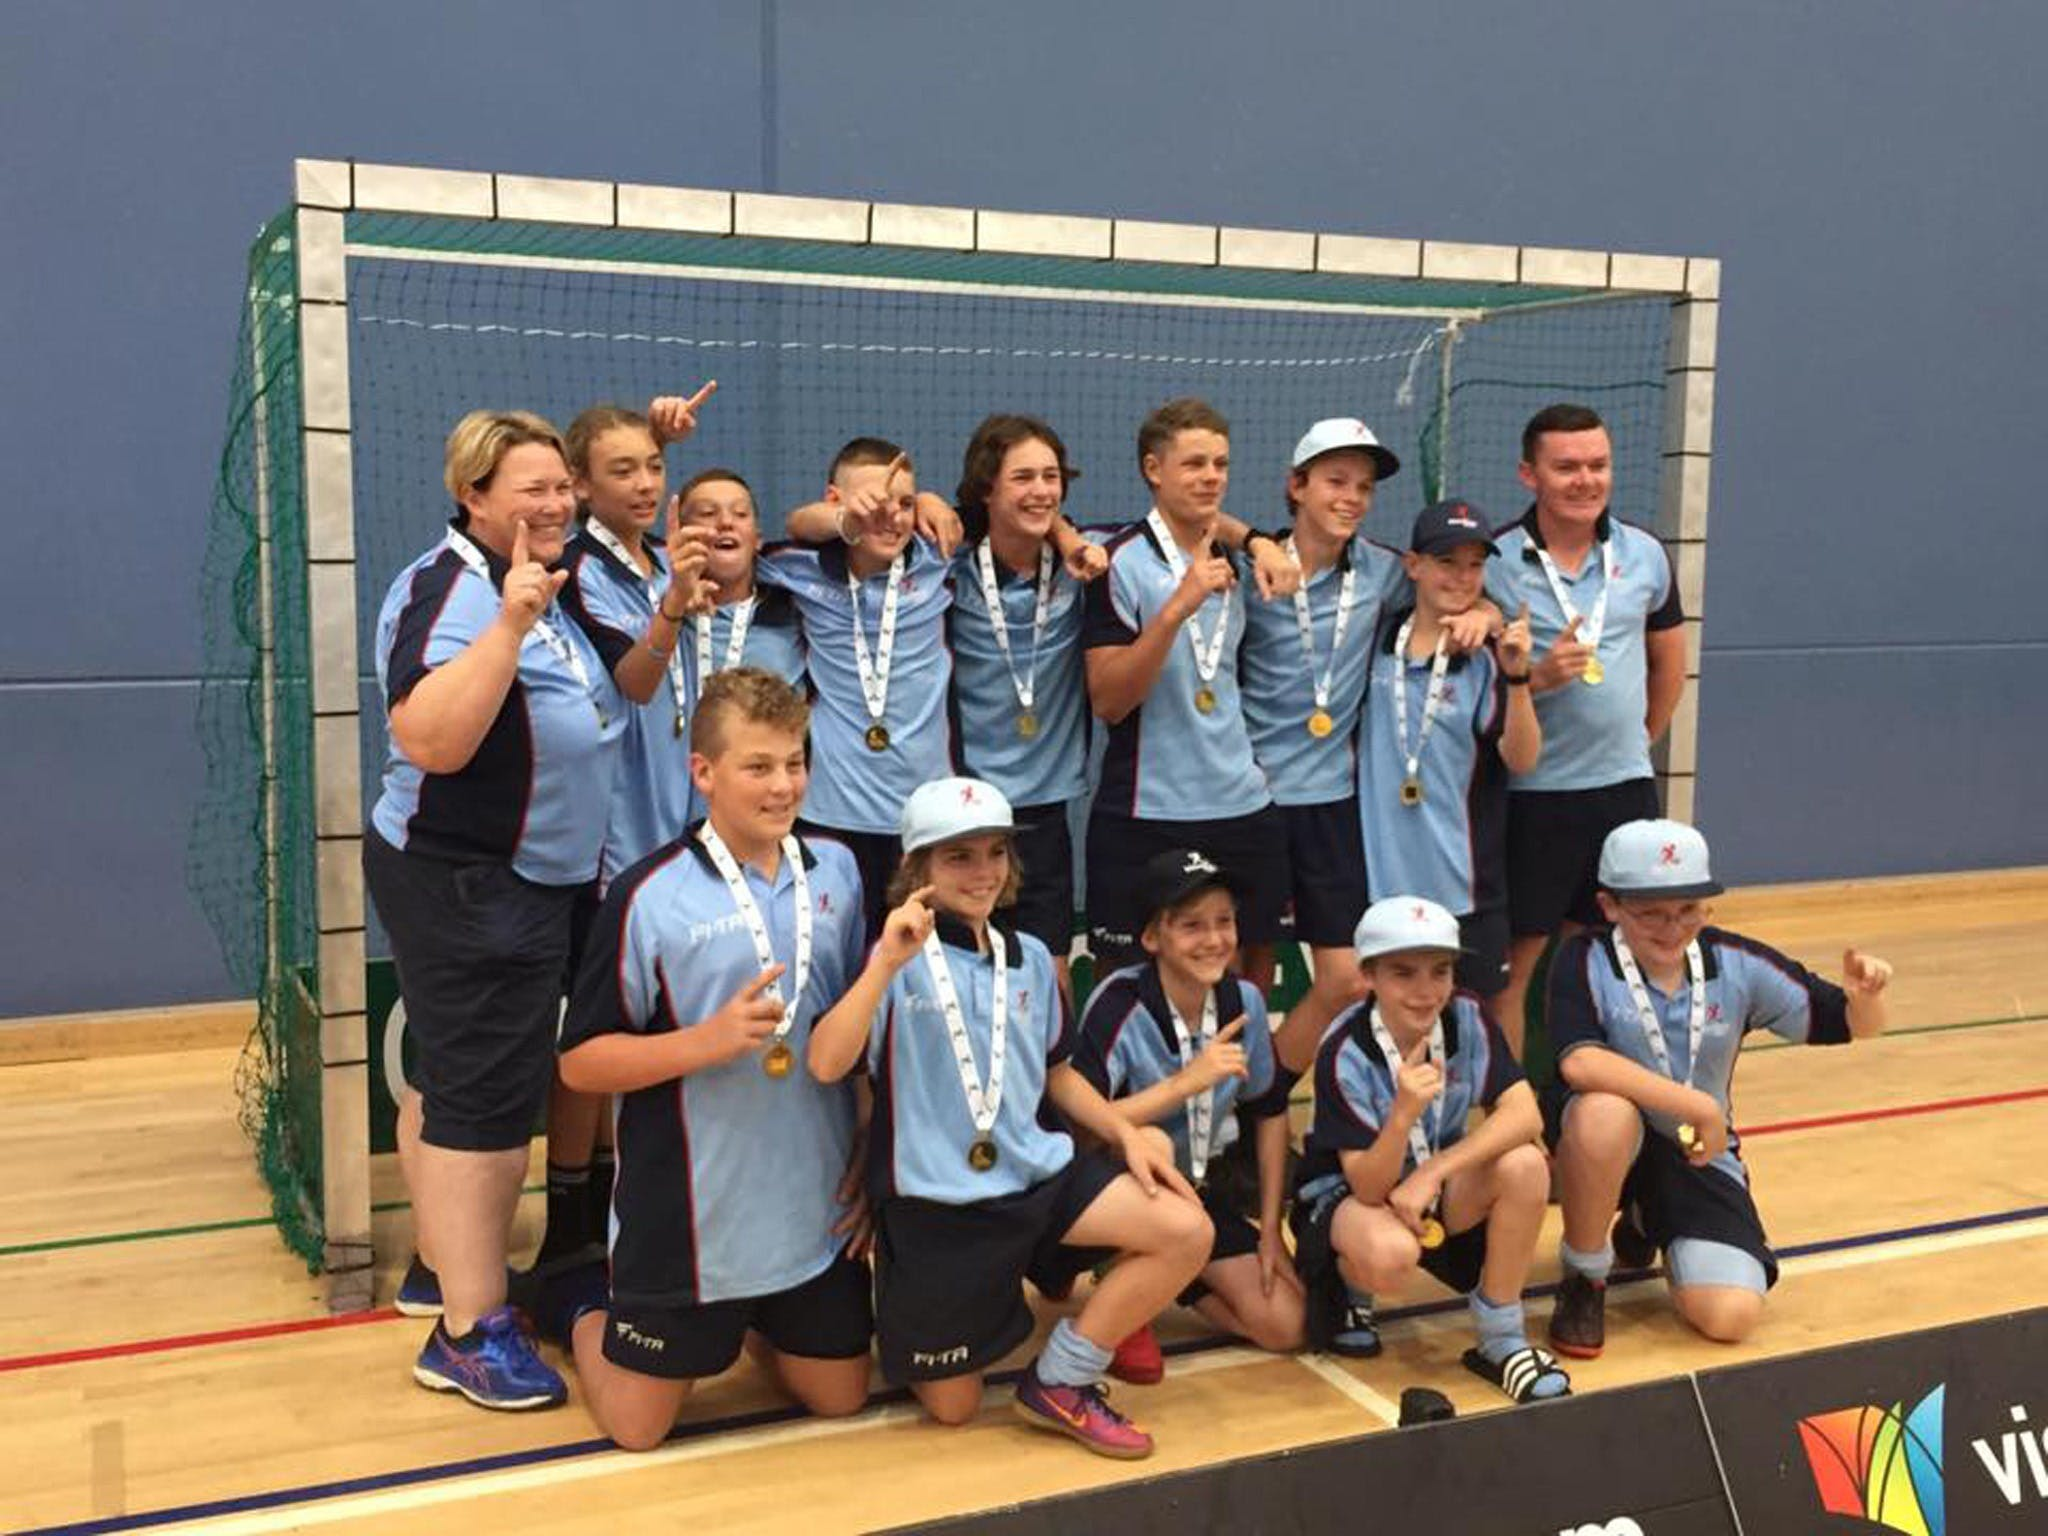 Hockey NSW Indoor State Championship  Under 18 Boys - VIC Tourism